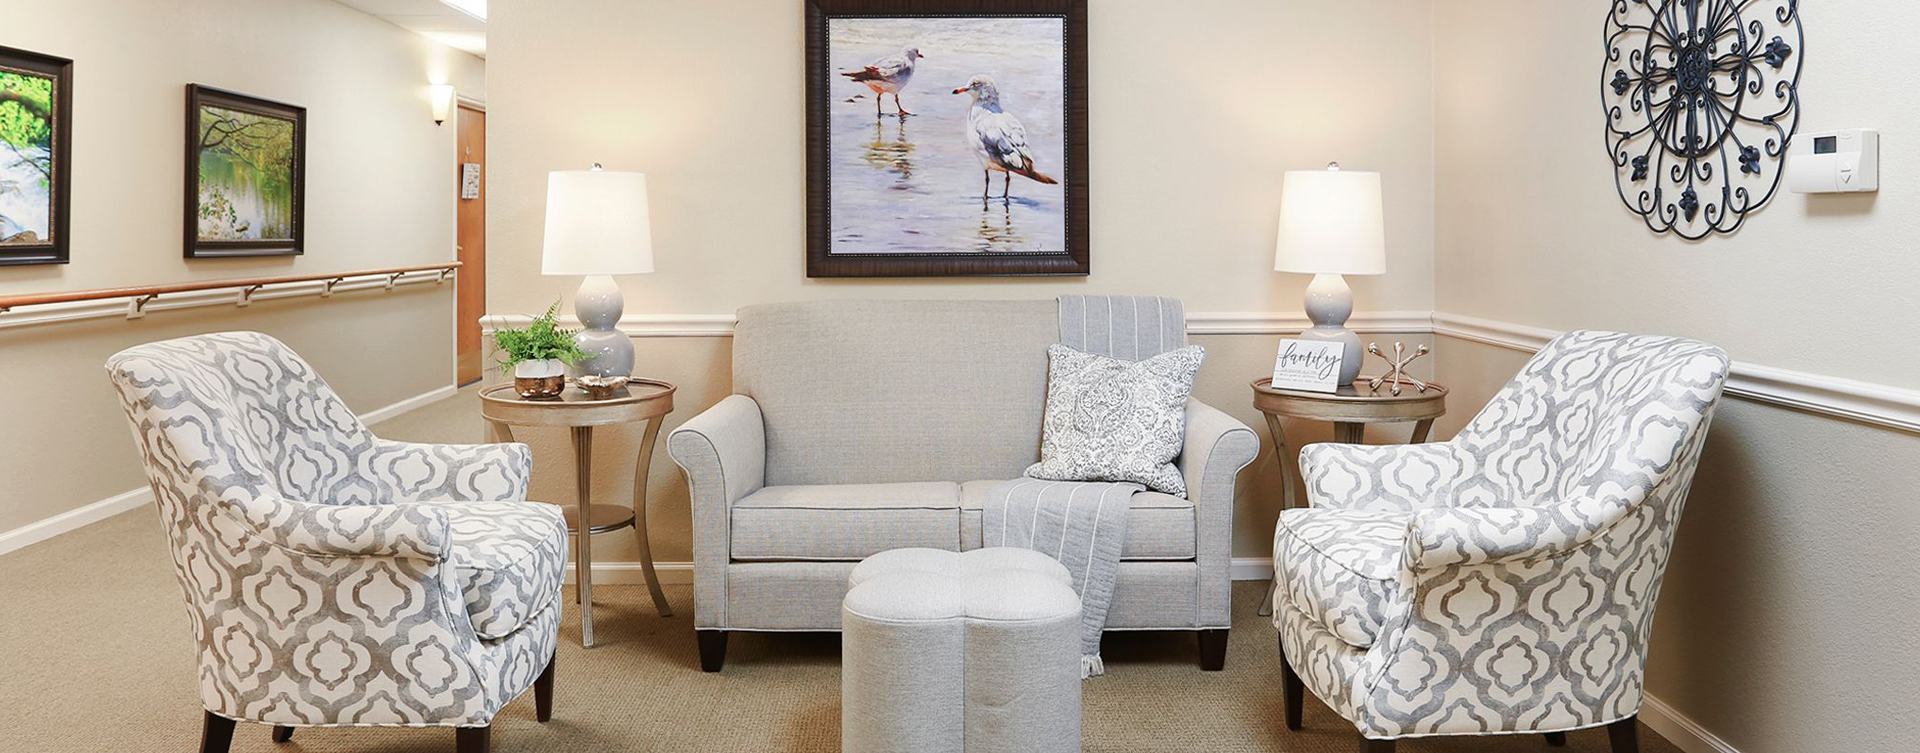 Enjoy a good book in the sitting area at Bickford of Champaign